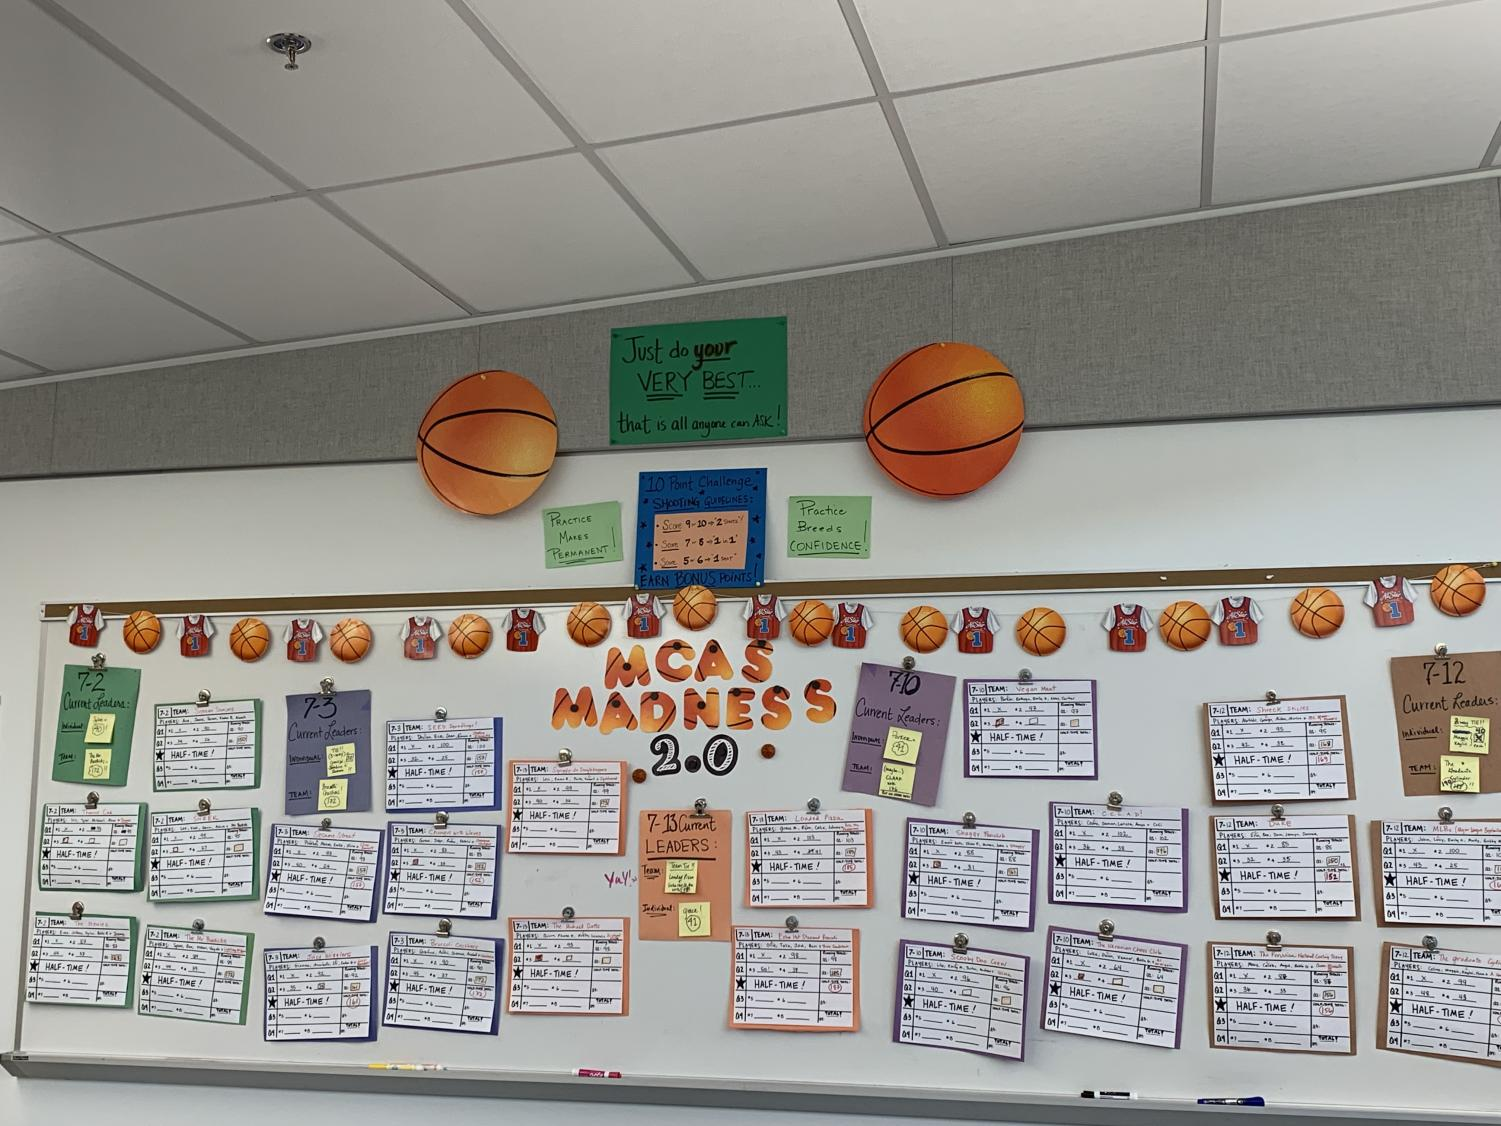 The MCAS Madness board shows team and individual scores throughout the competition, as well as abundant inspiration.